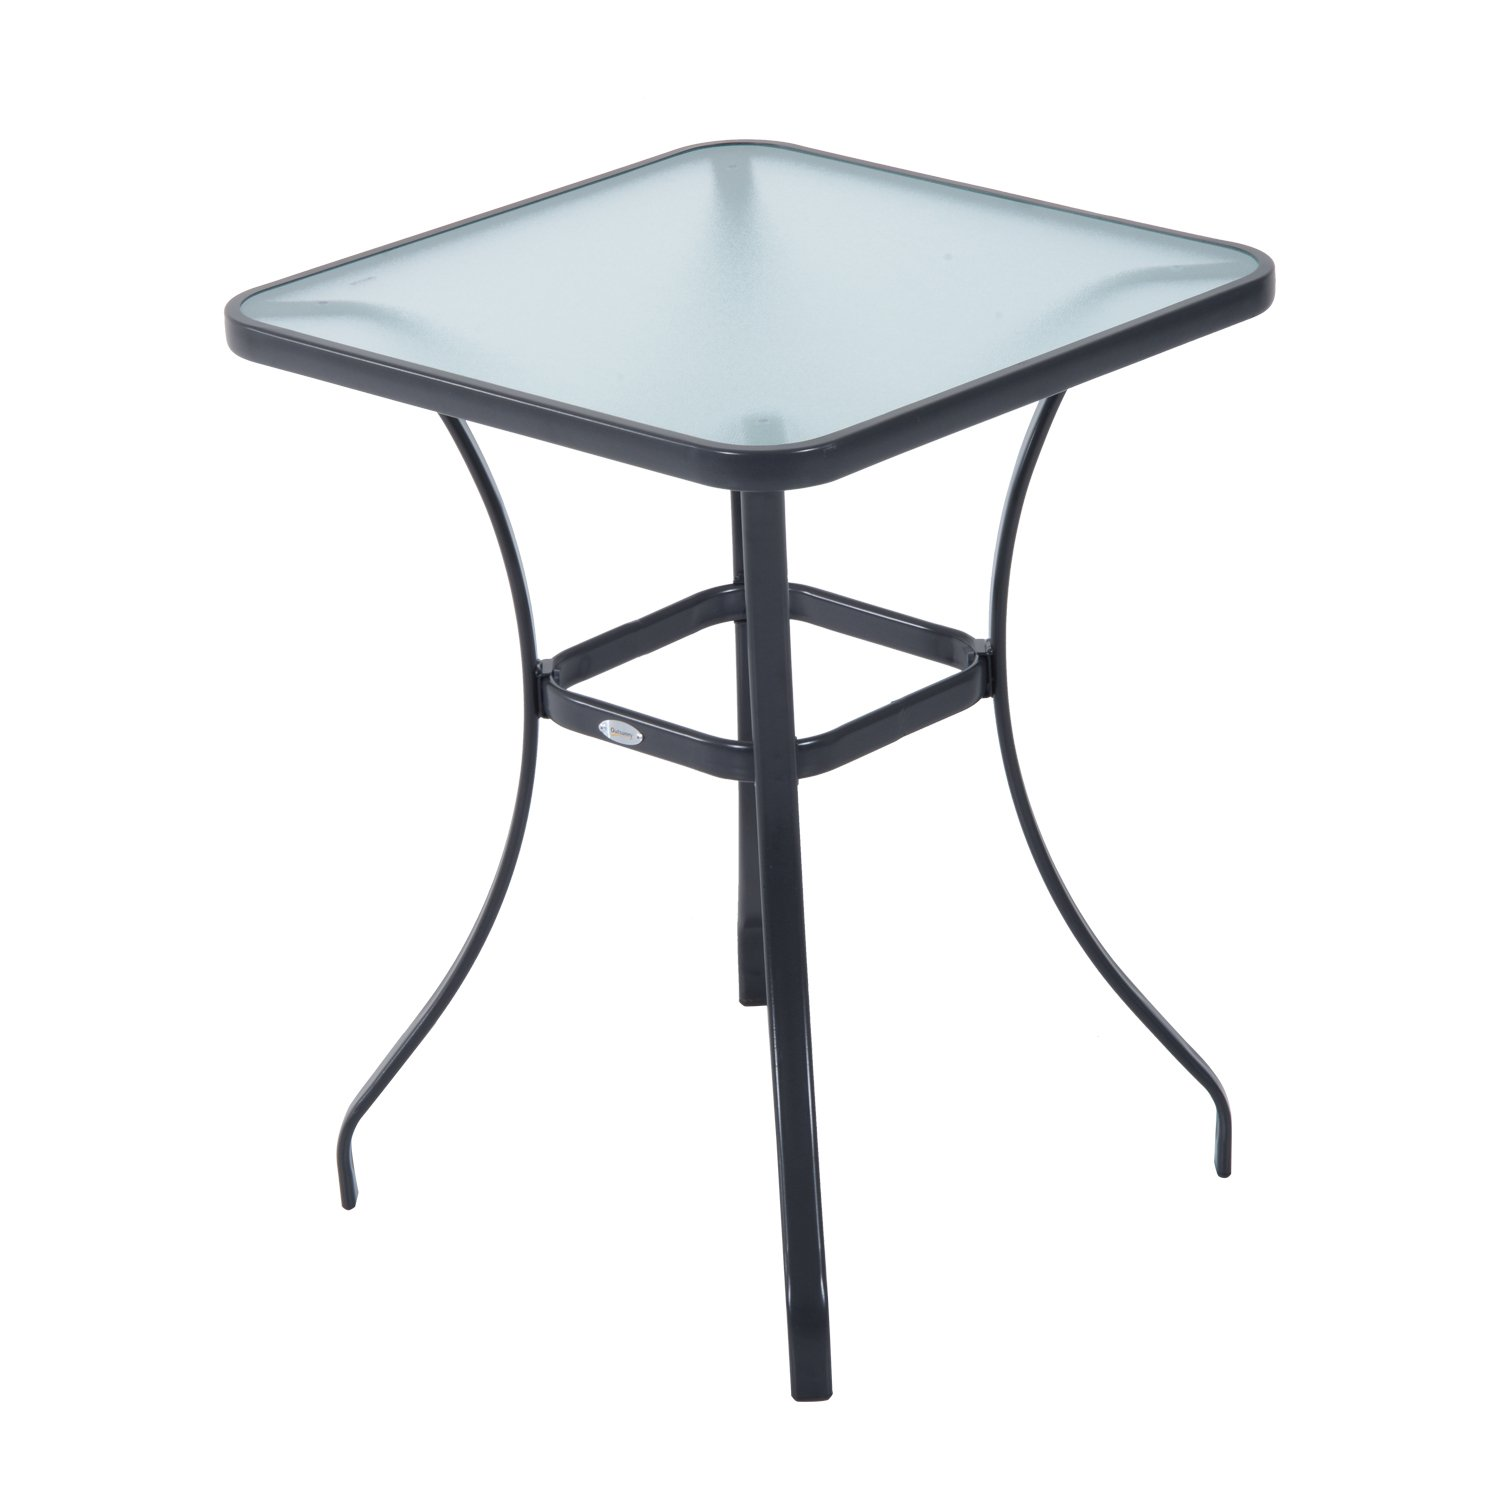 Outsunny 34'' Outdoor Glass Top Bistro Table - Black